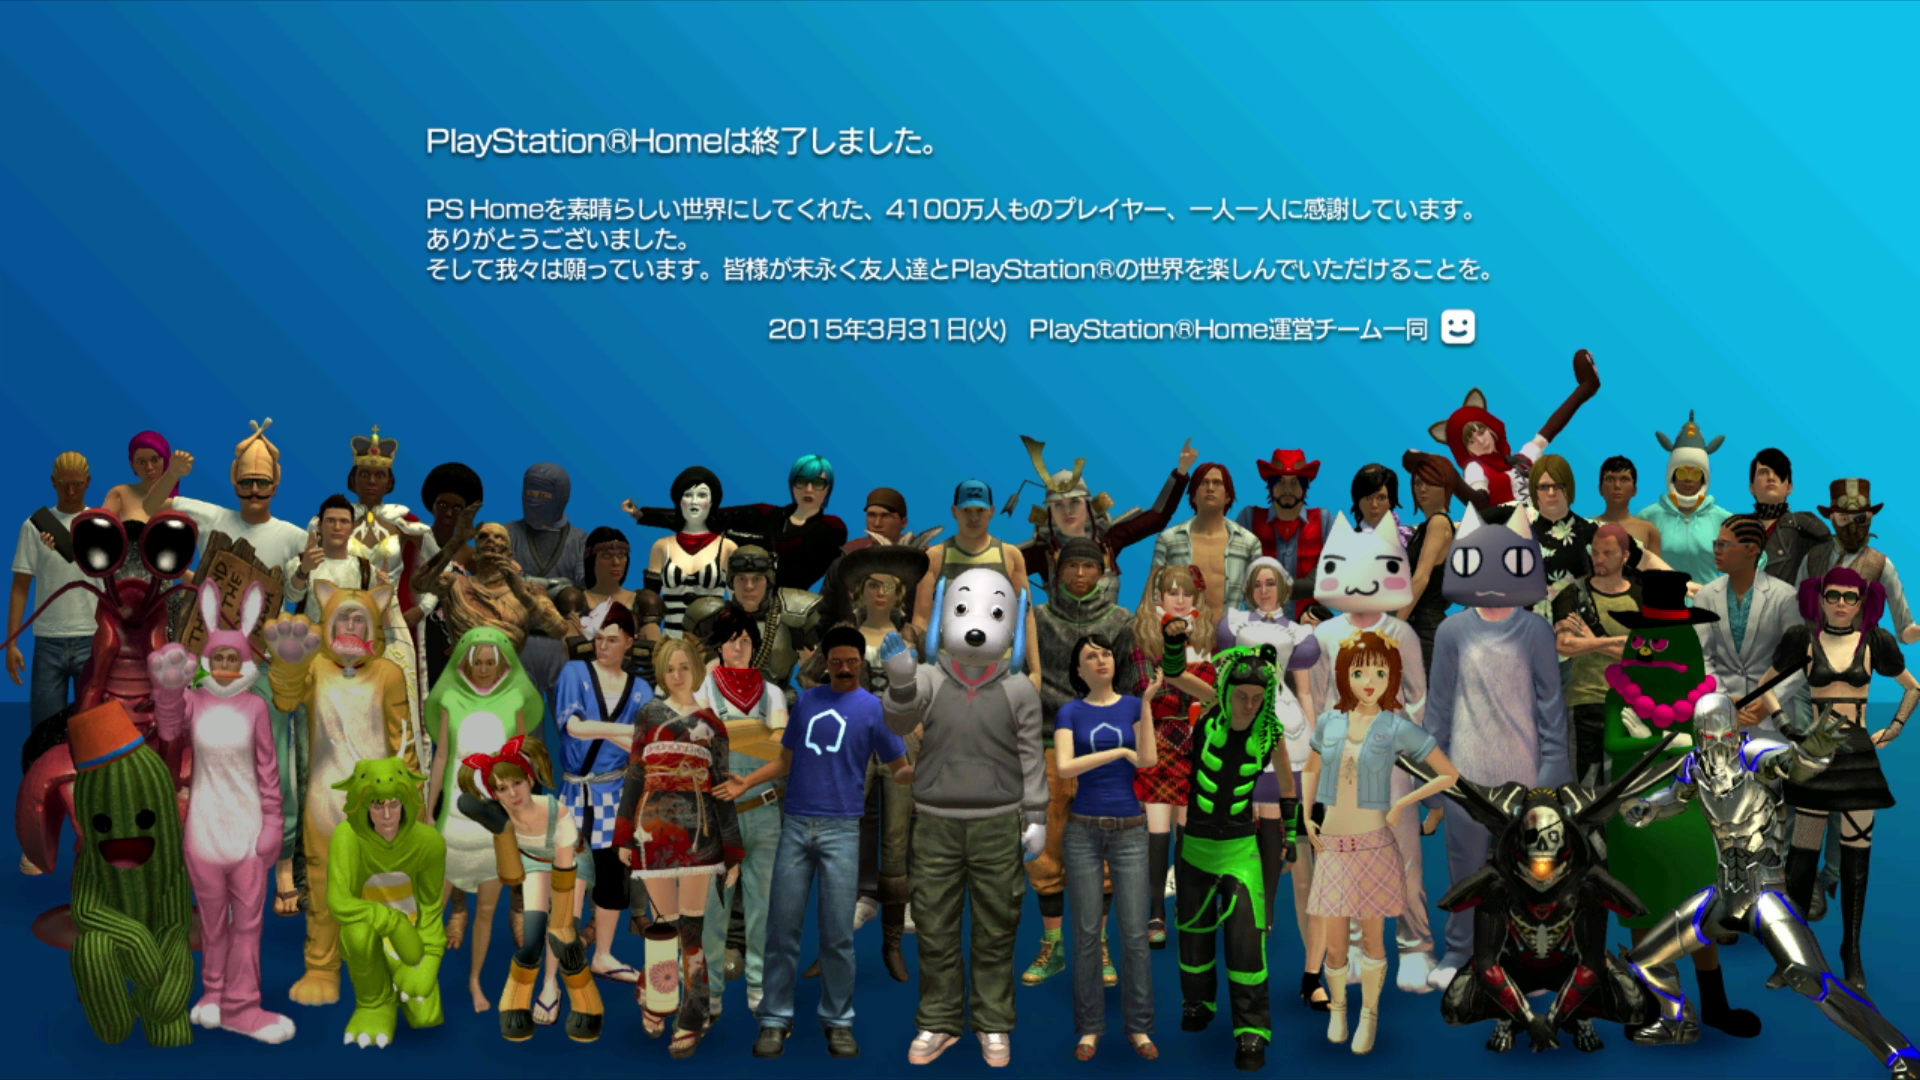 The End - Thank you all, C.Birch, Apr 1, 2015, 8:37 AM, YourPSHome.net, png, ありがとう.png